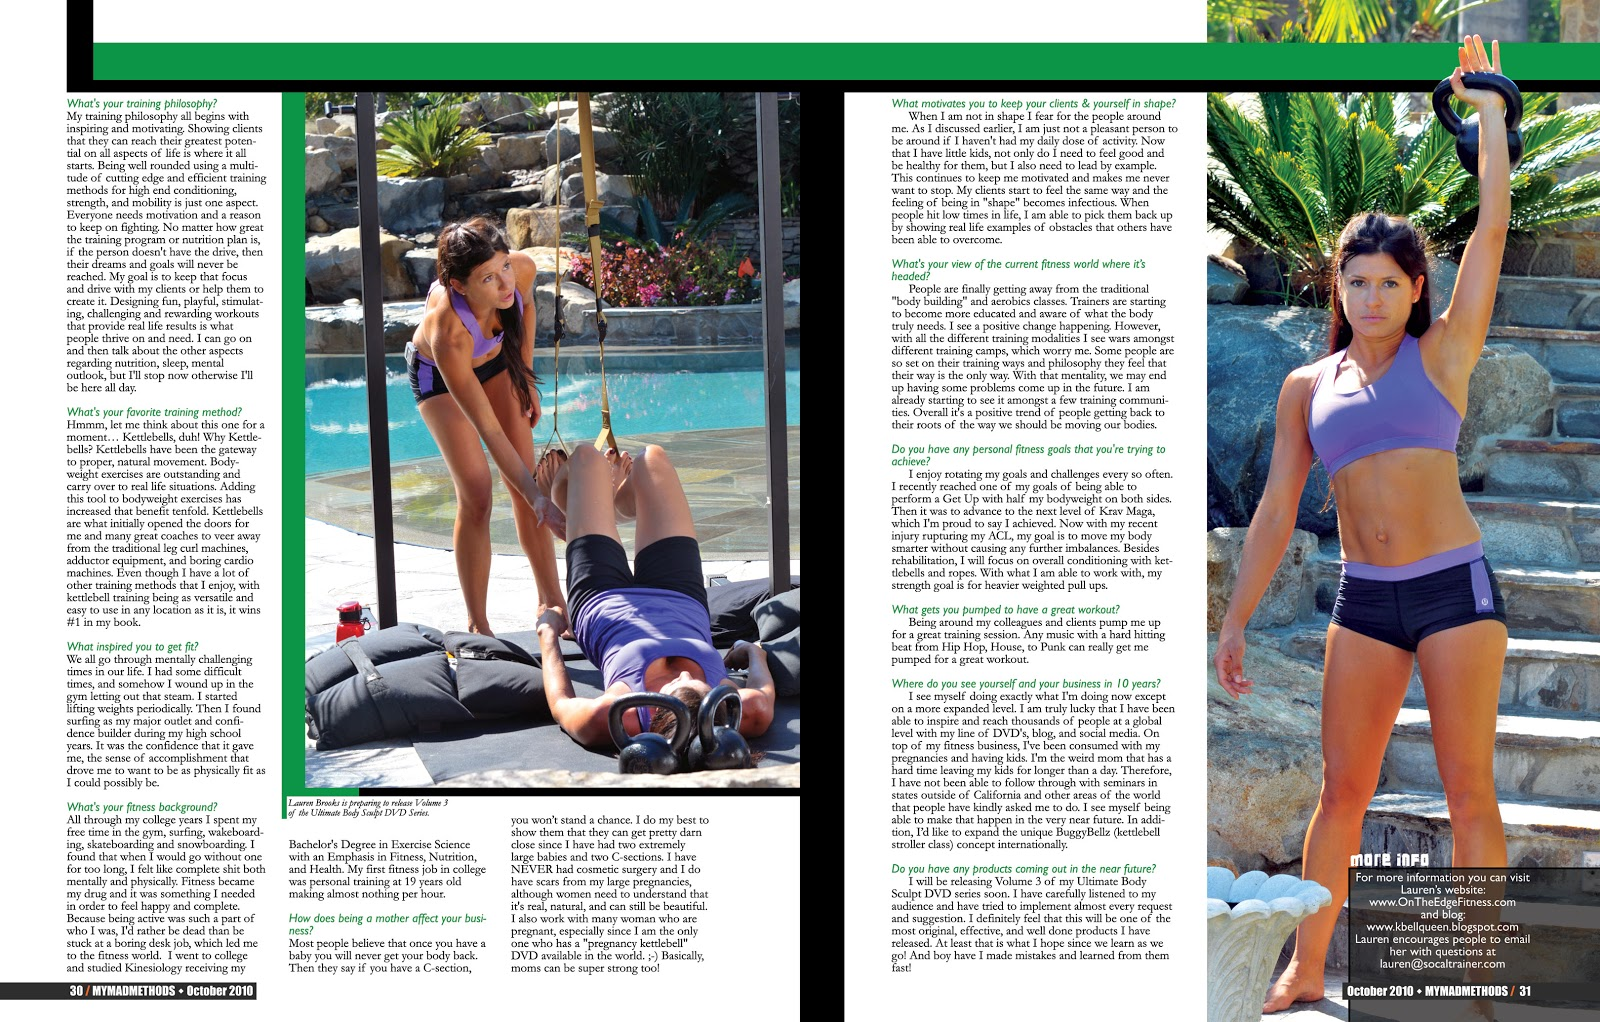 lauren brooks fitness lauren brooks interview in mymadmethods you can purchase hard copies of this magazine online at mymadmethods com click on the image to this little interview